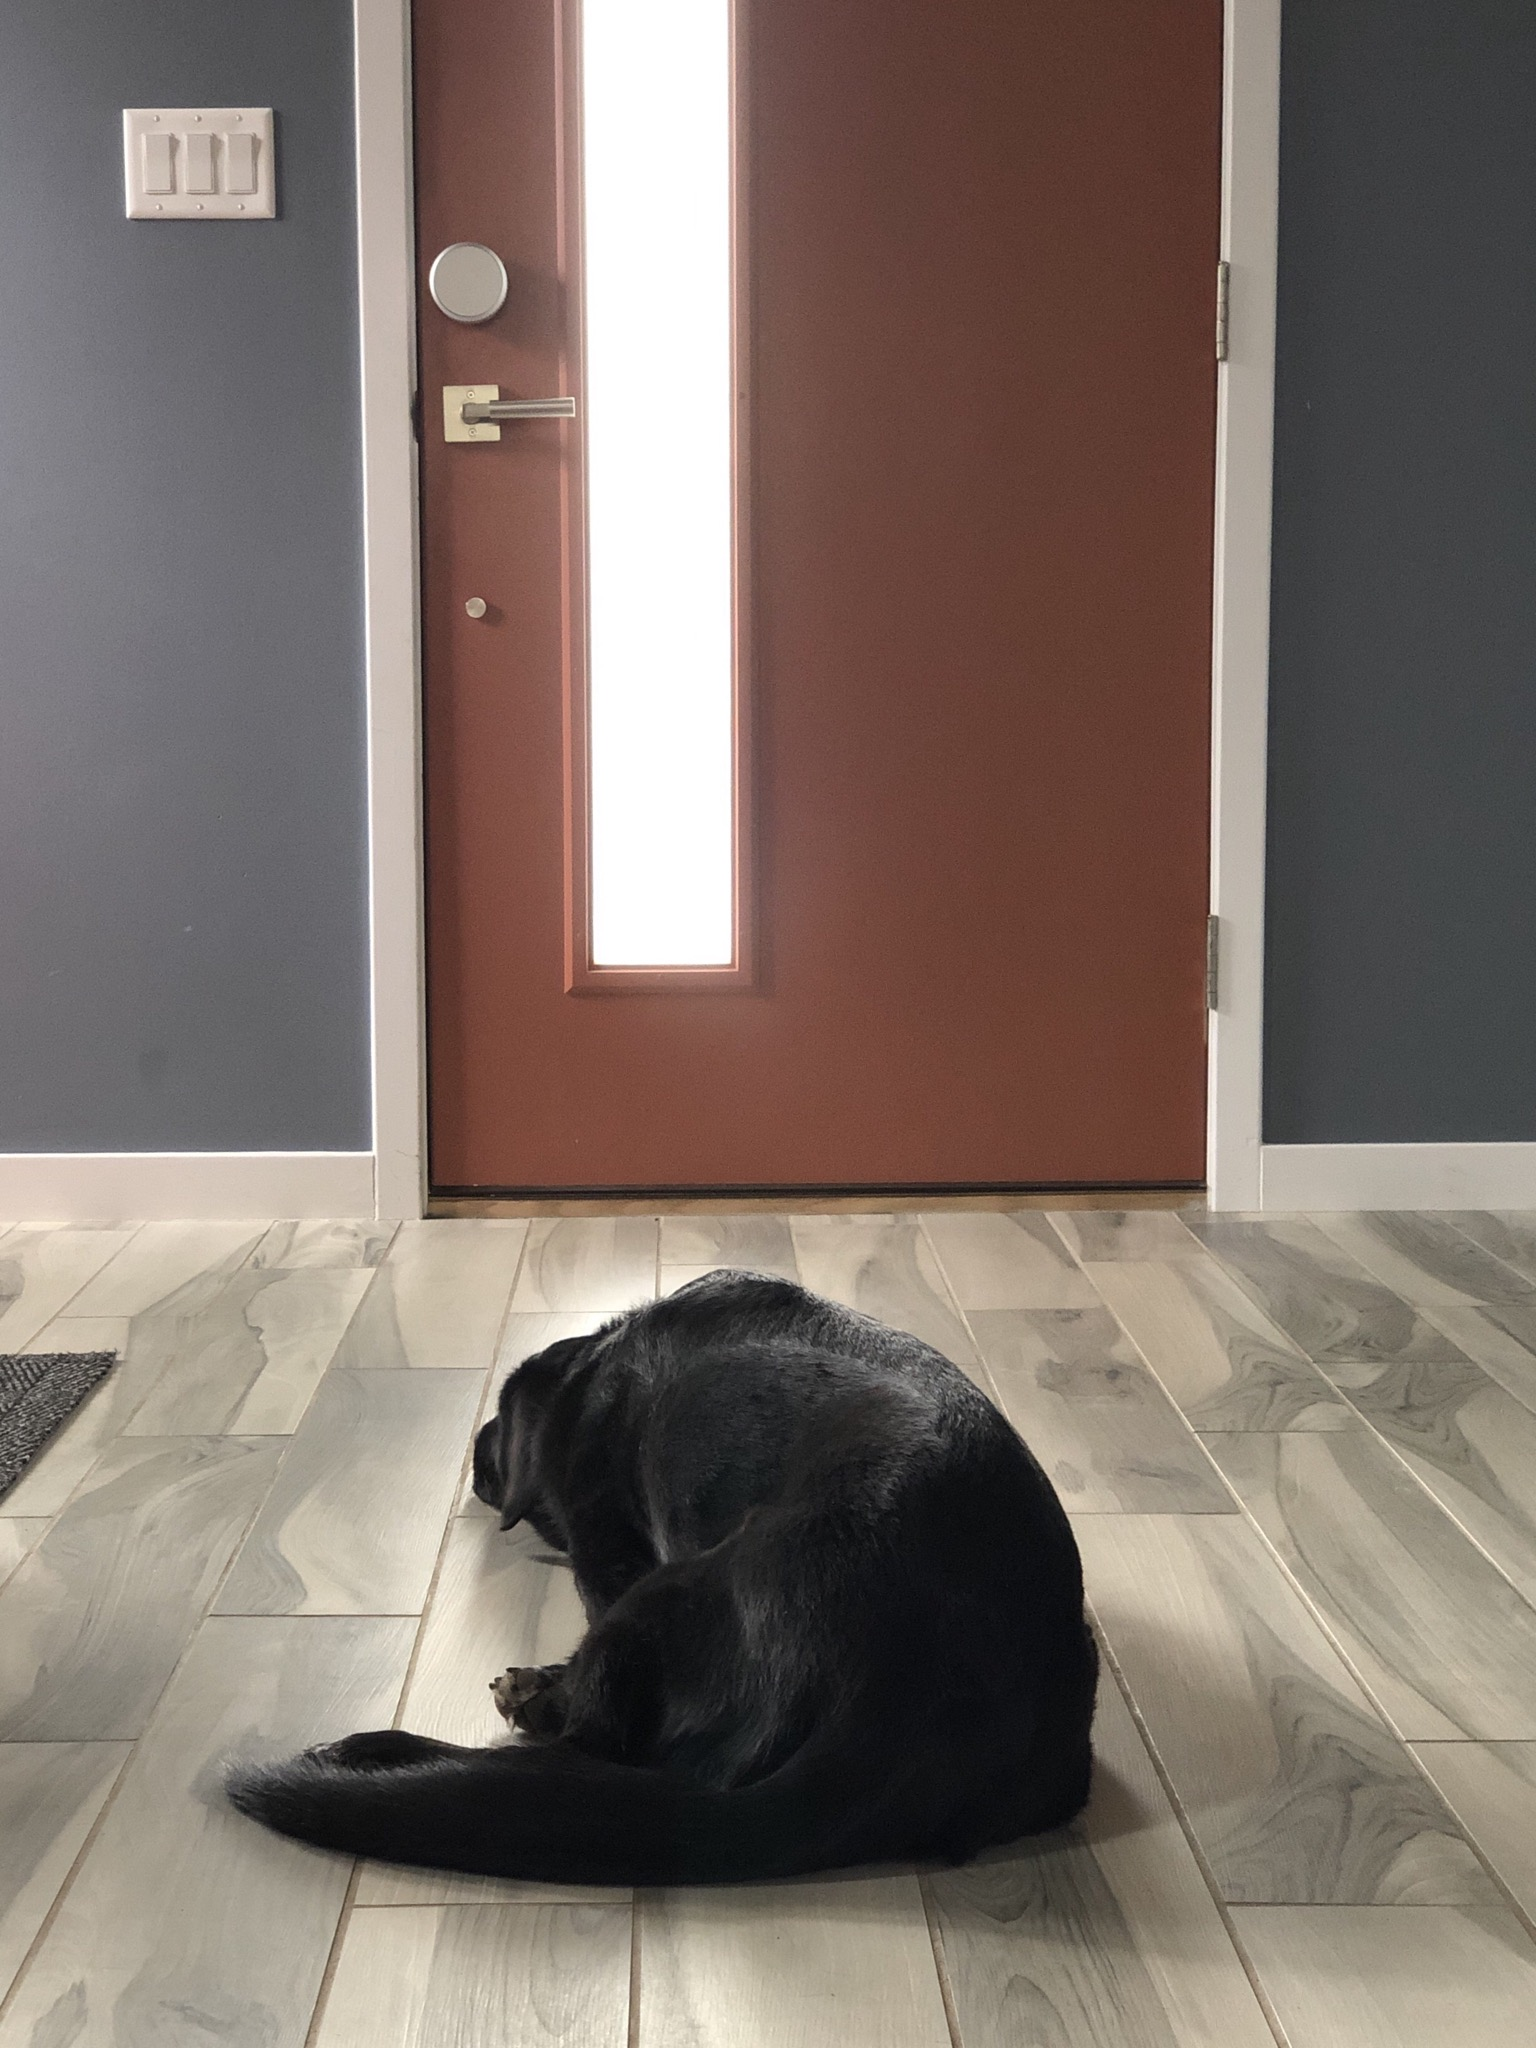 Photo of a black dog laying in front of a closed door